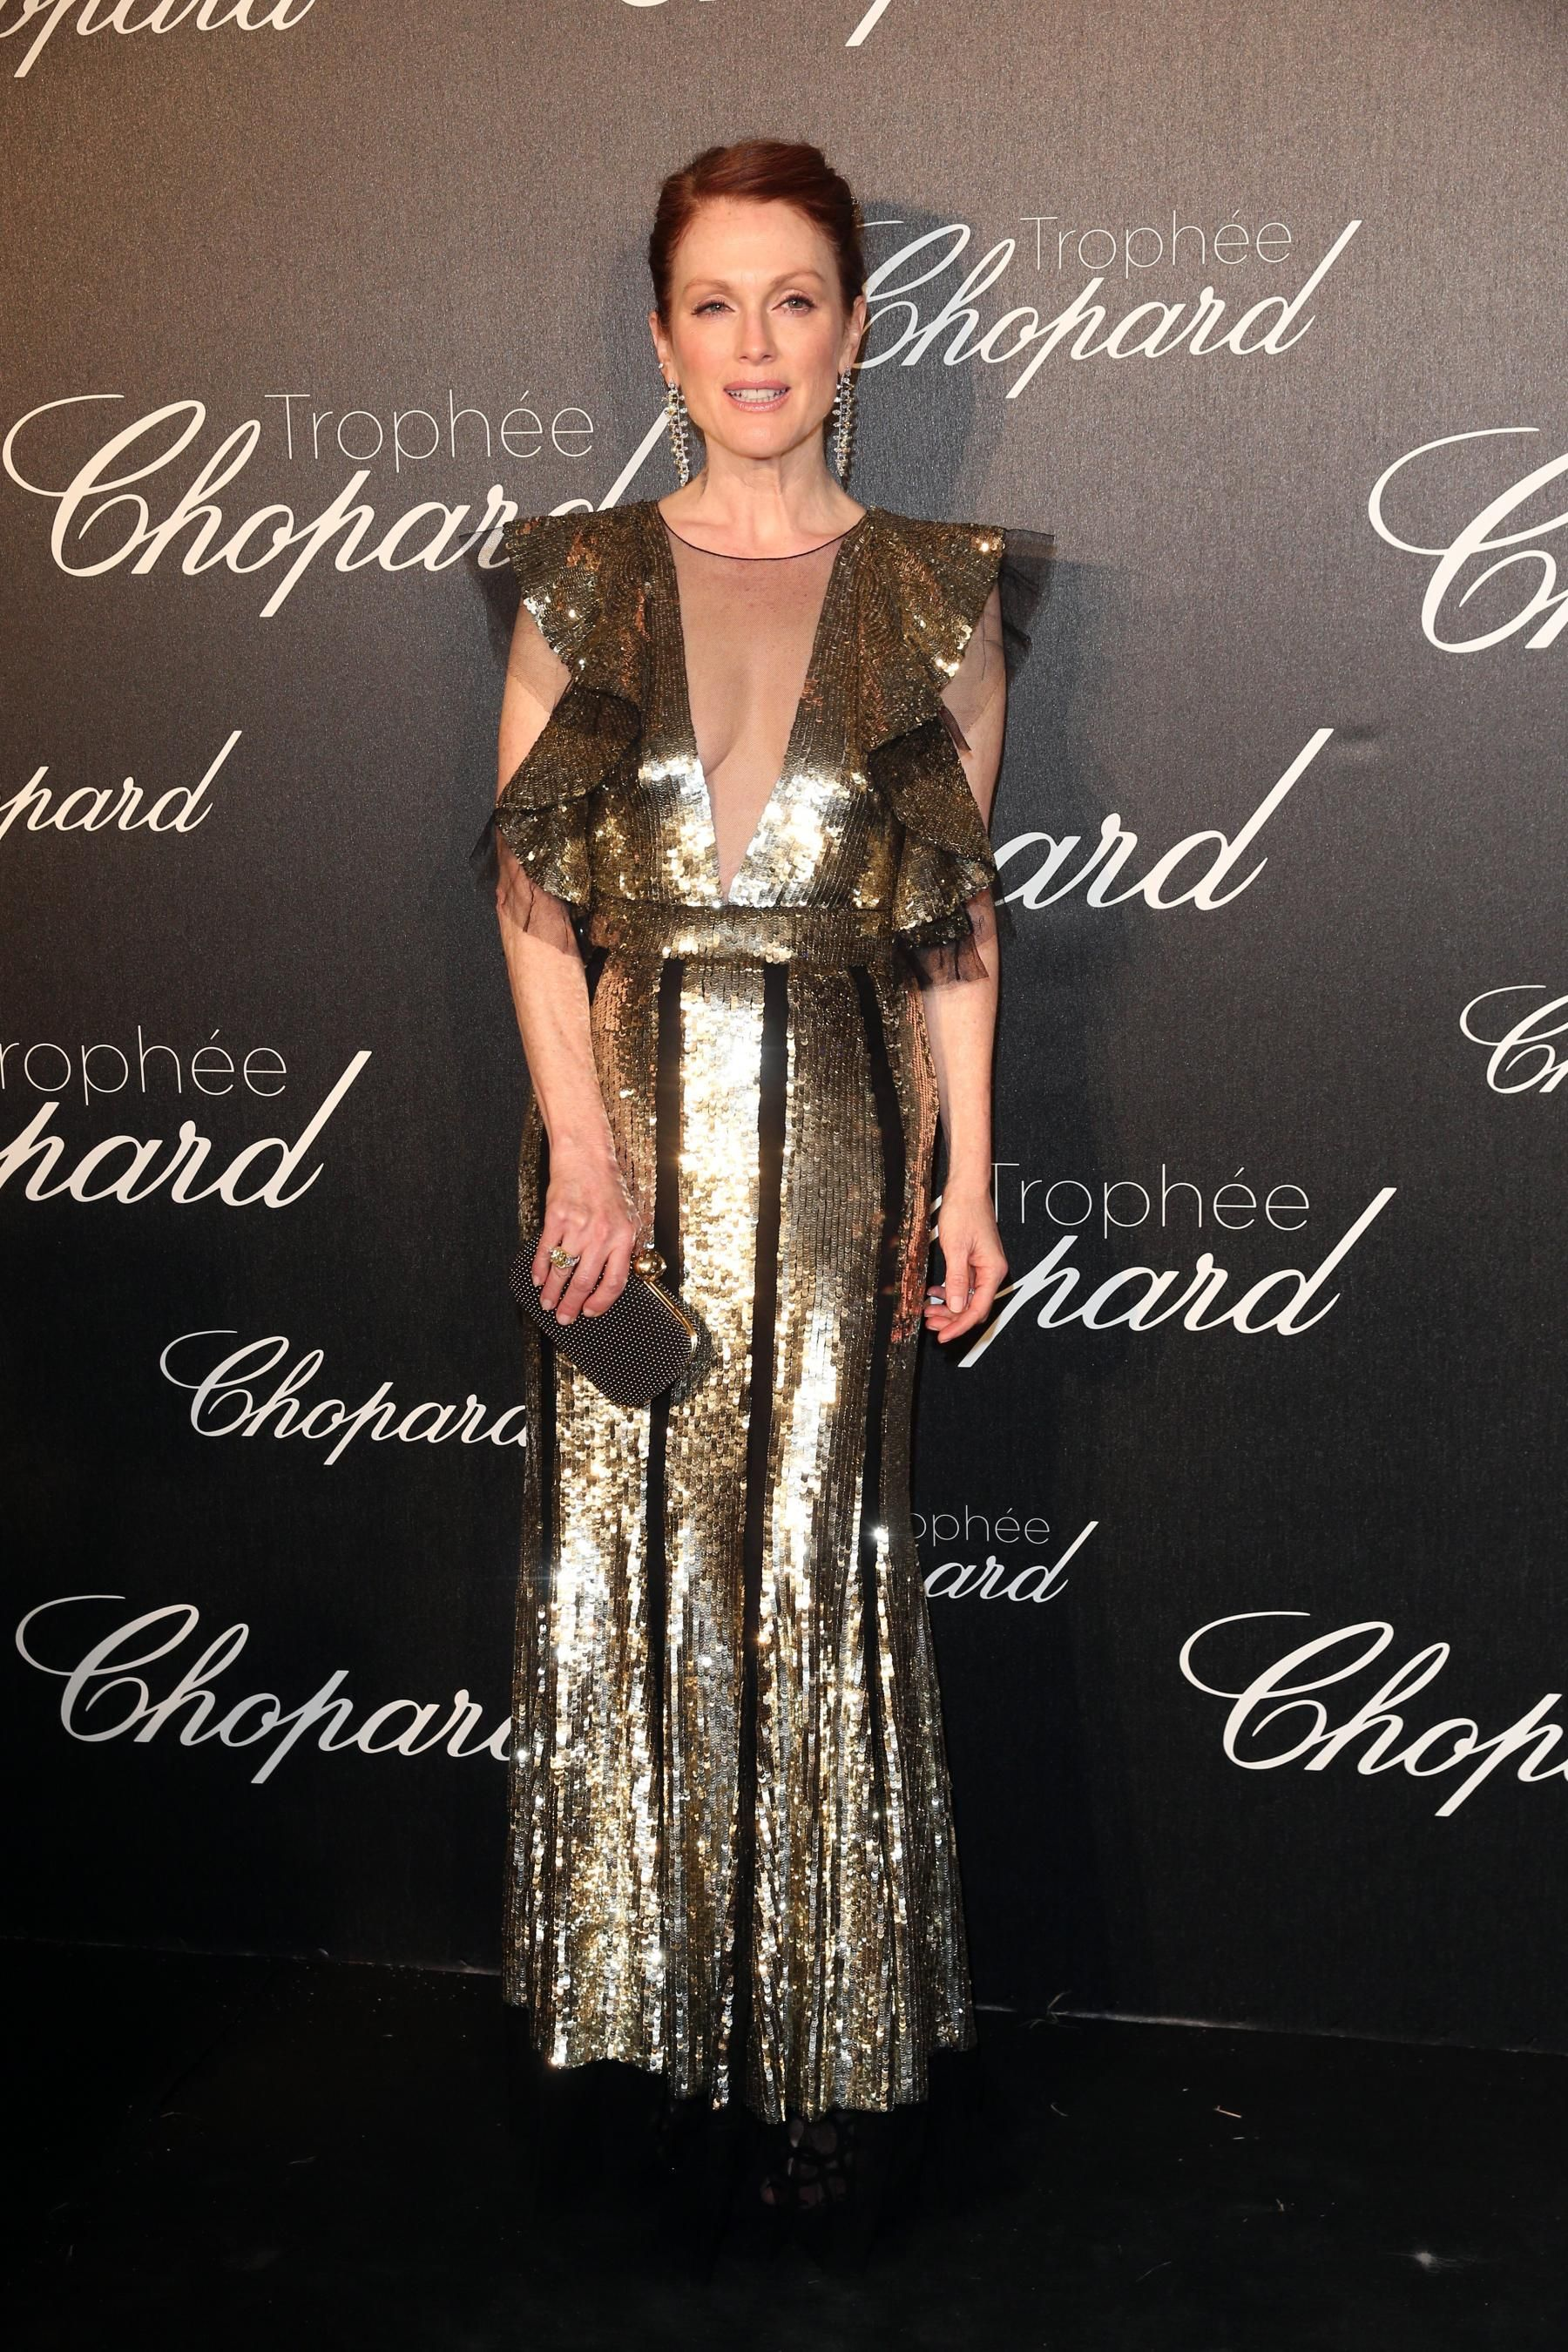 Julianne Moore in Alexander McQueen at the Chopard Trophy Ceremony. Photo: Gisela Schober/Getty Images.